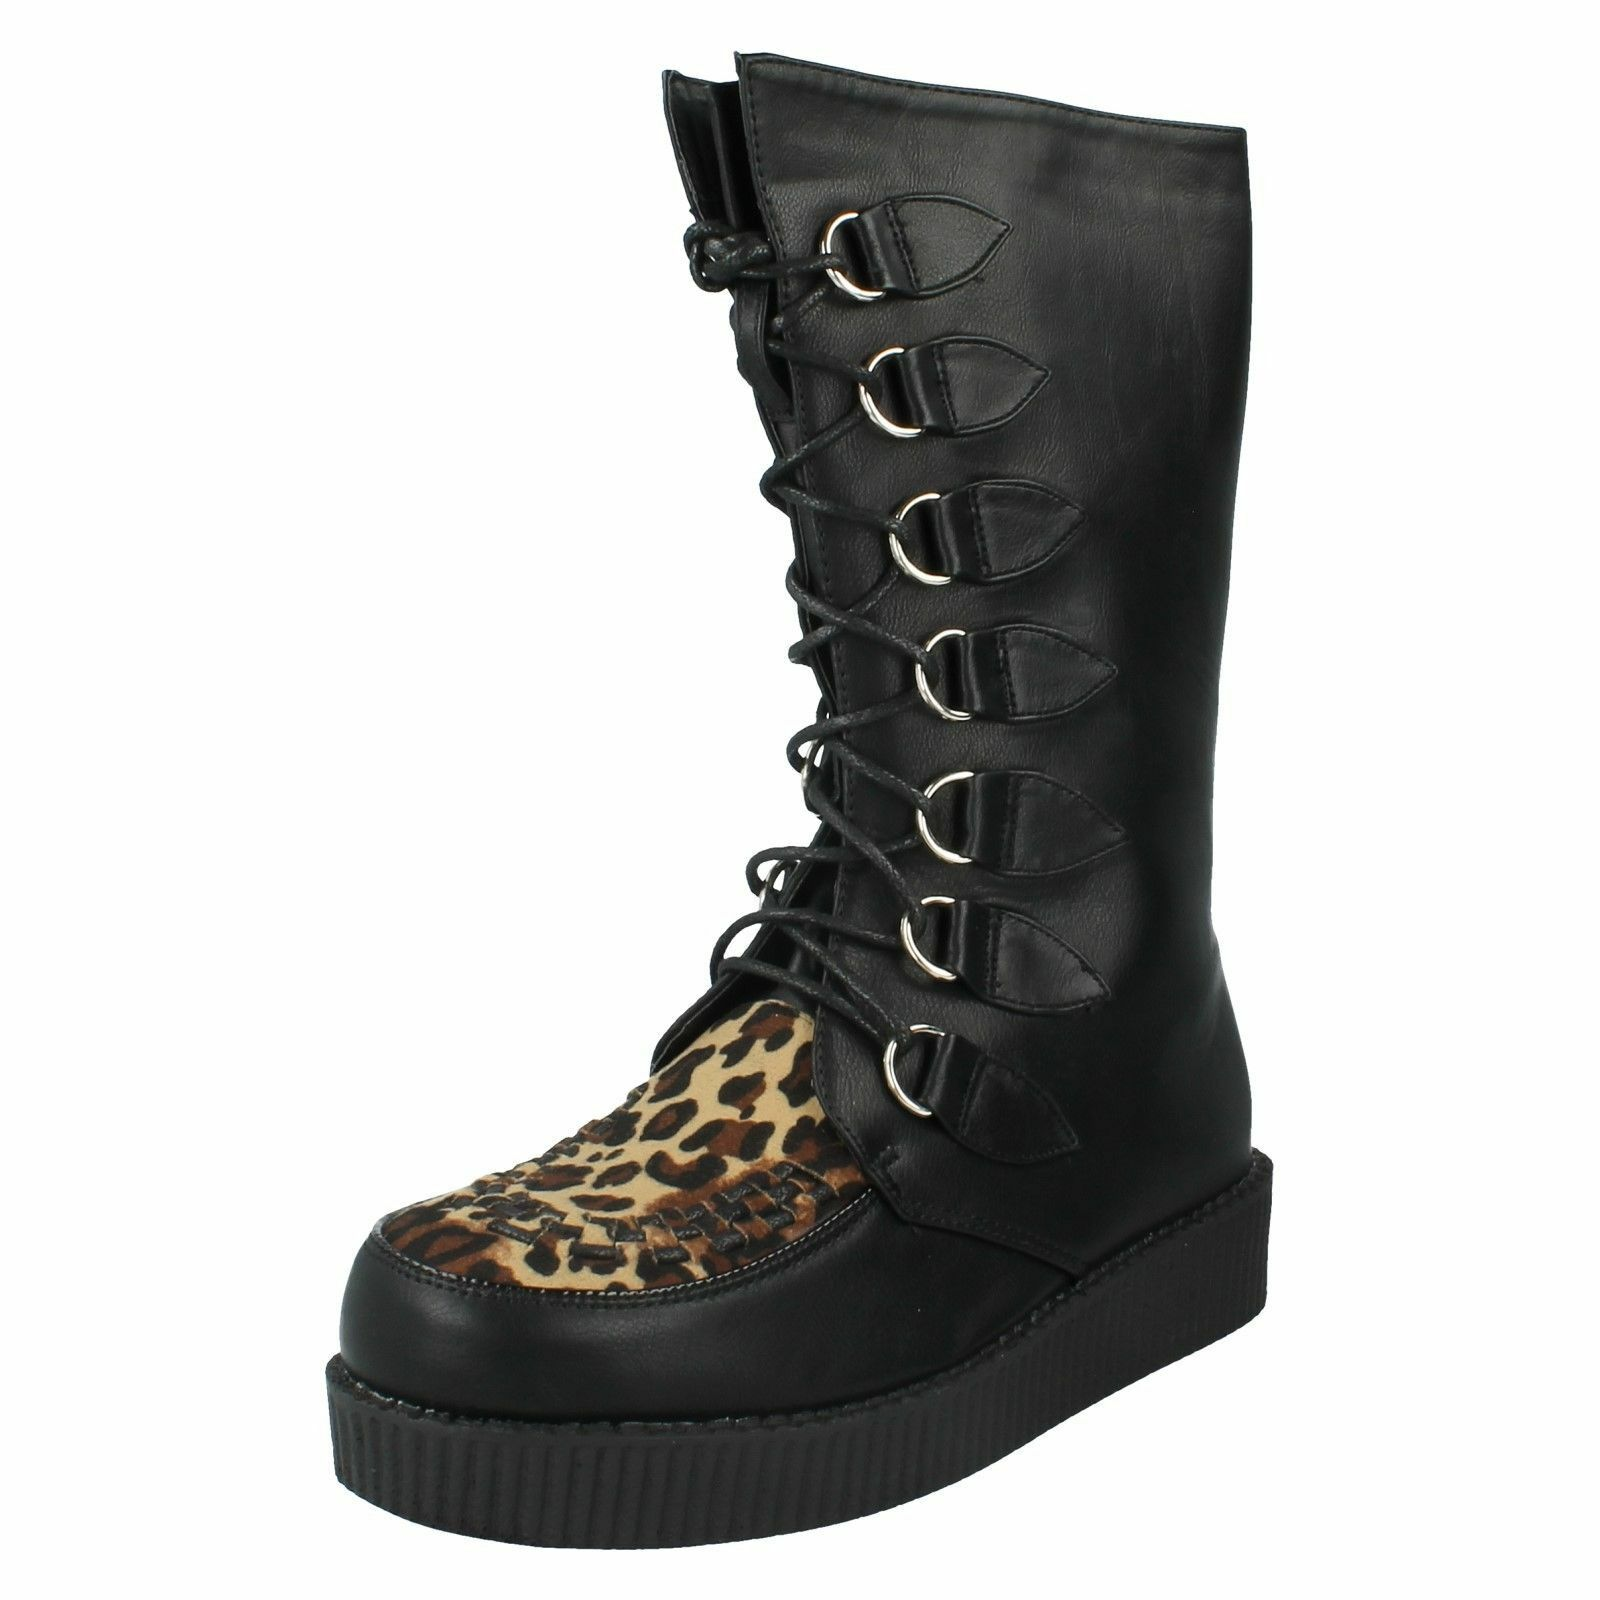 Ladies F50018 black synthetic mid calf boots with leopard print by Spot On £9.99